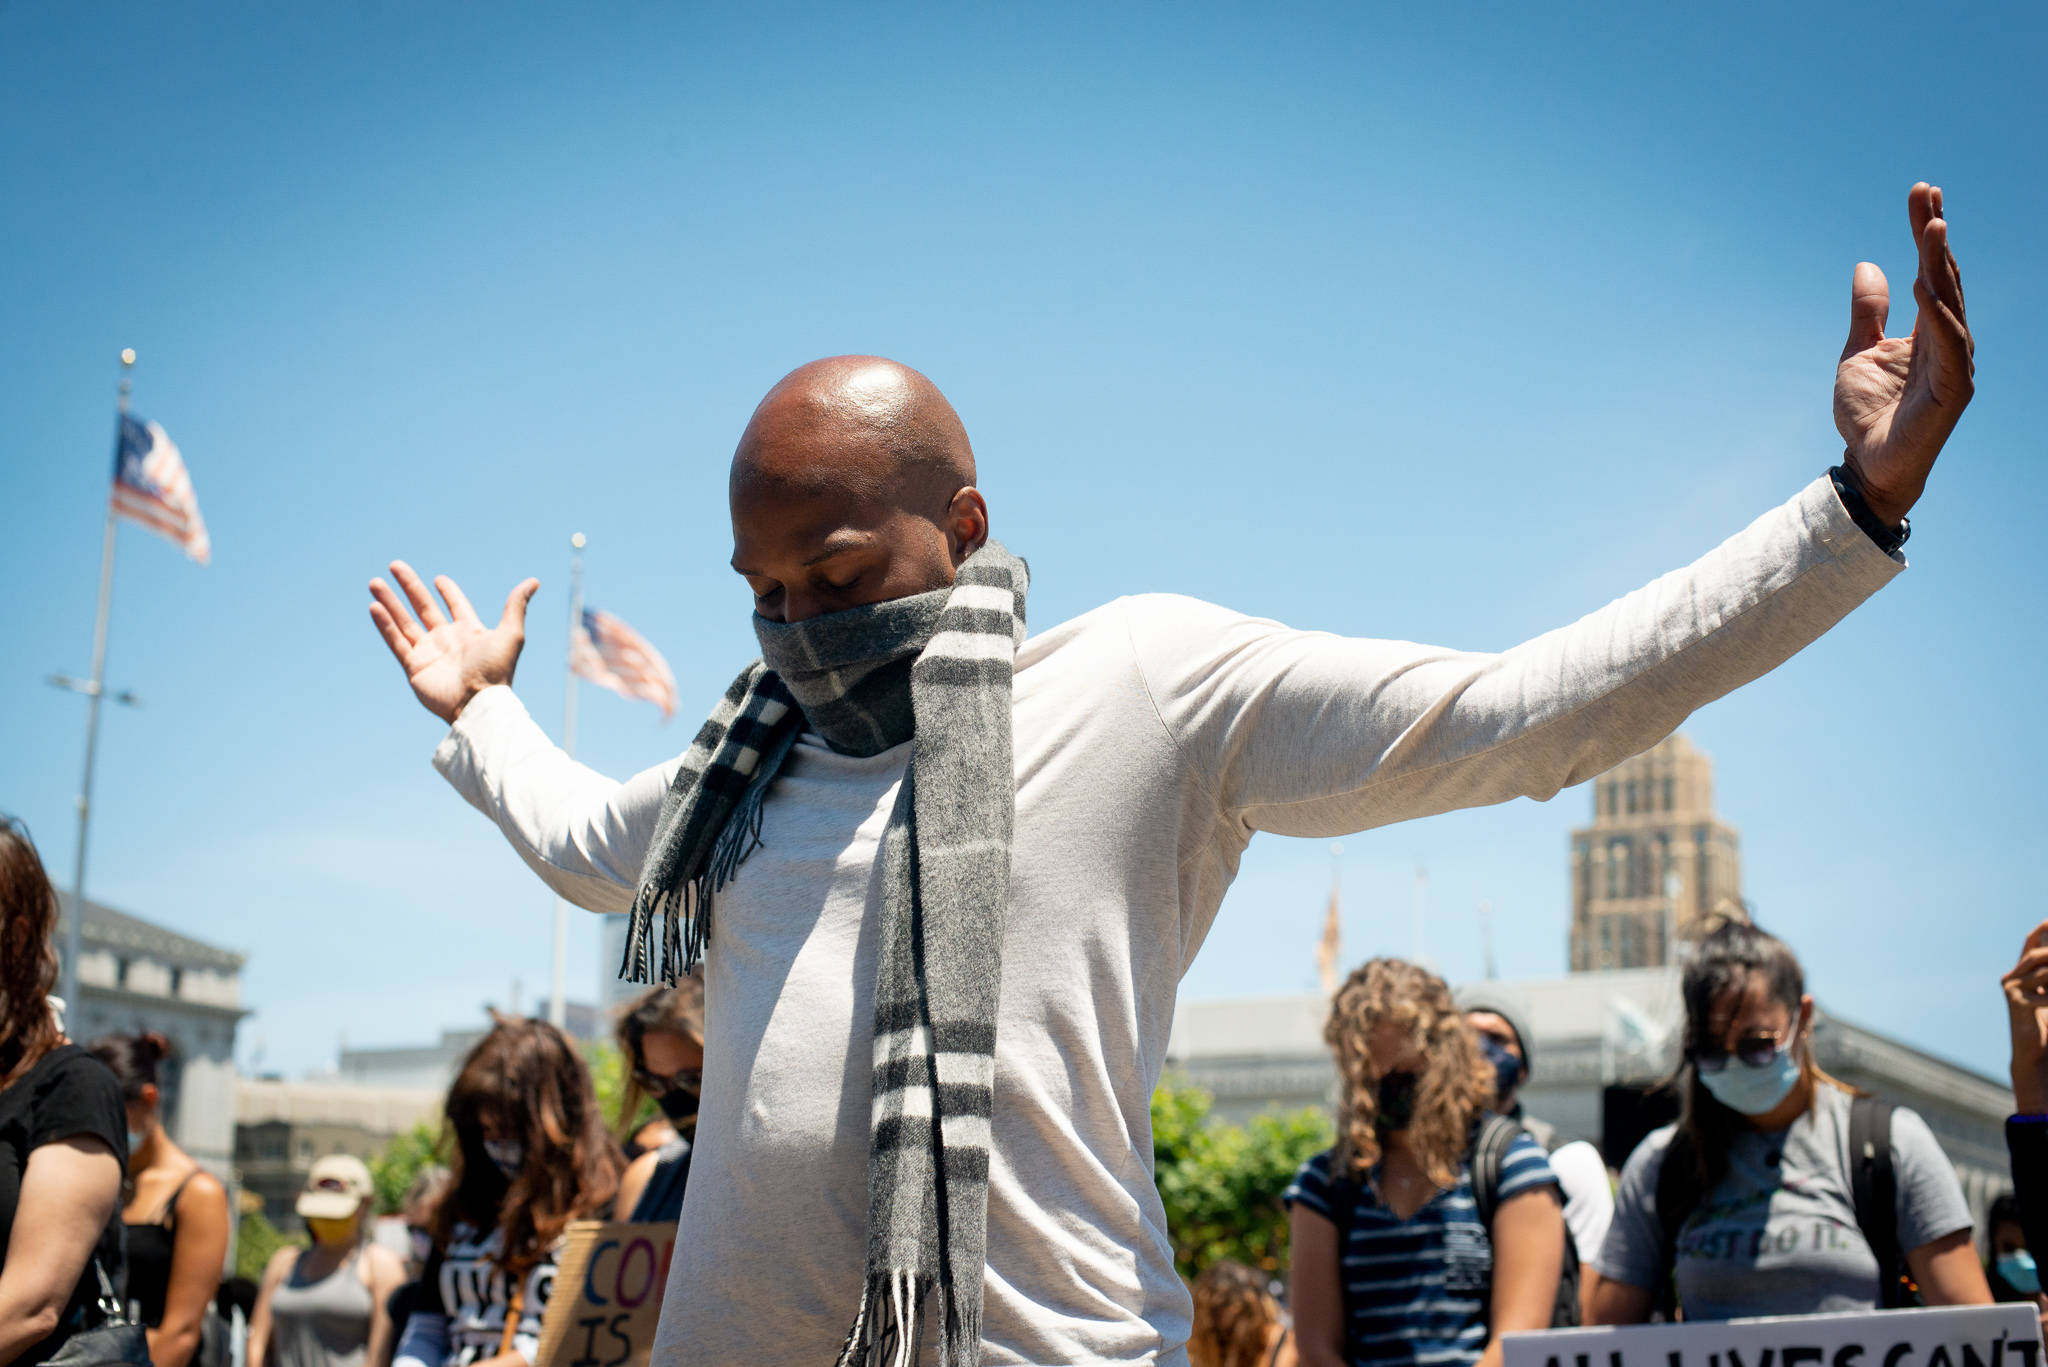 Juneteenth protest at San Francisco City Hall on June 19, 2020. (Nicholas Chan/Special to the S.F. Examiner)